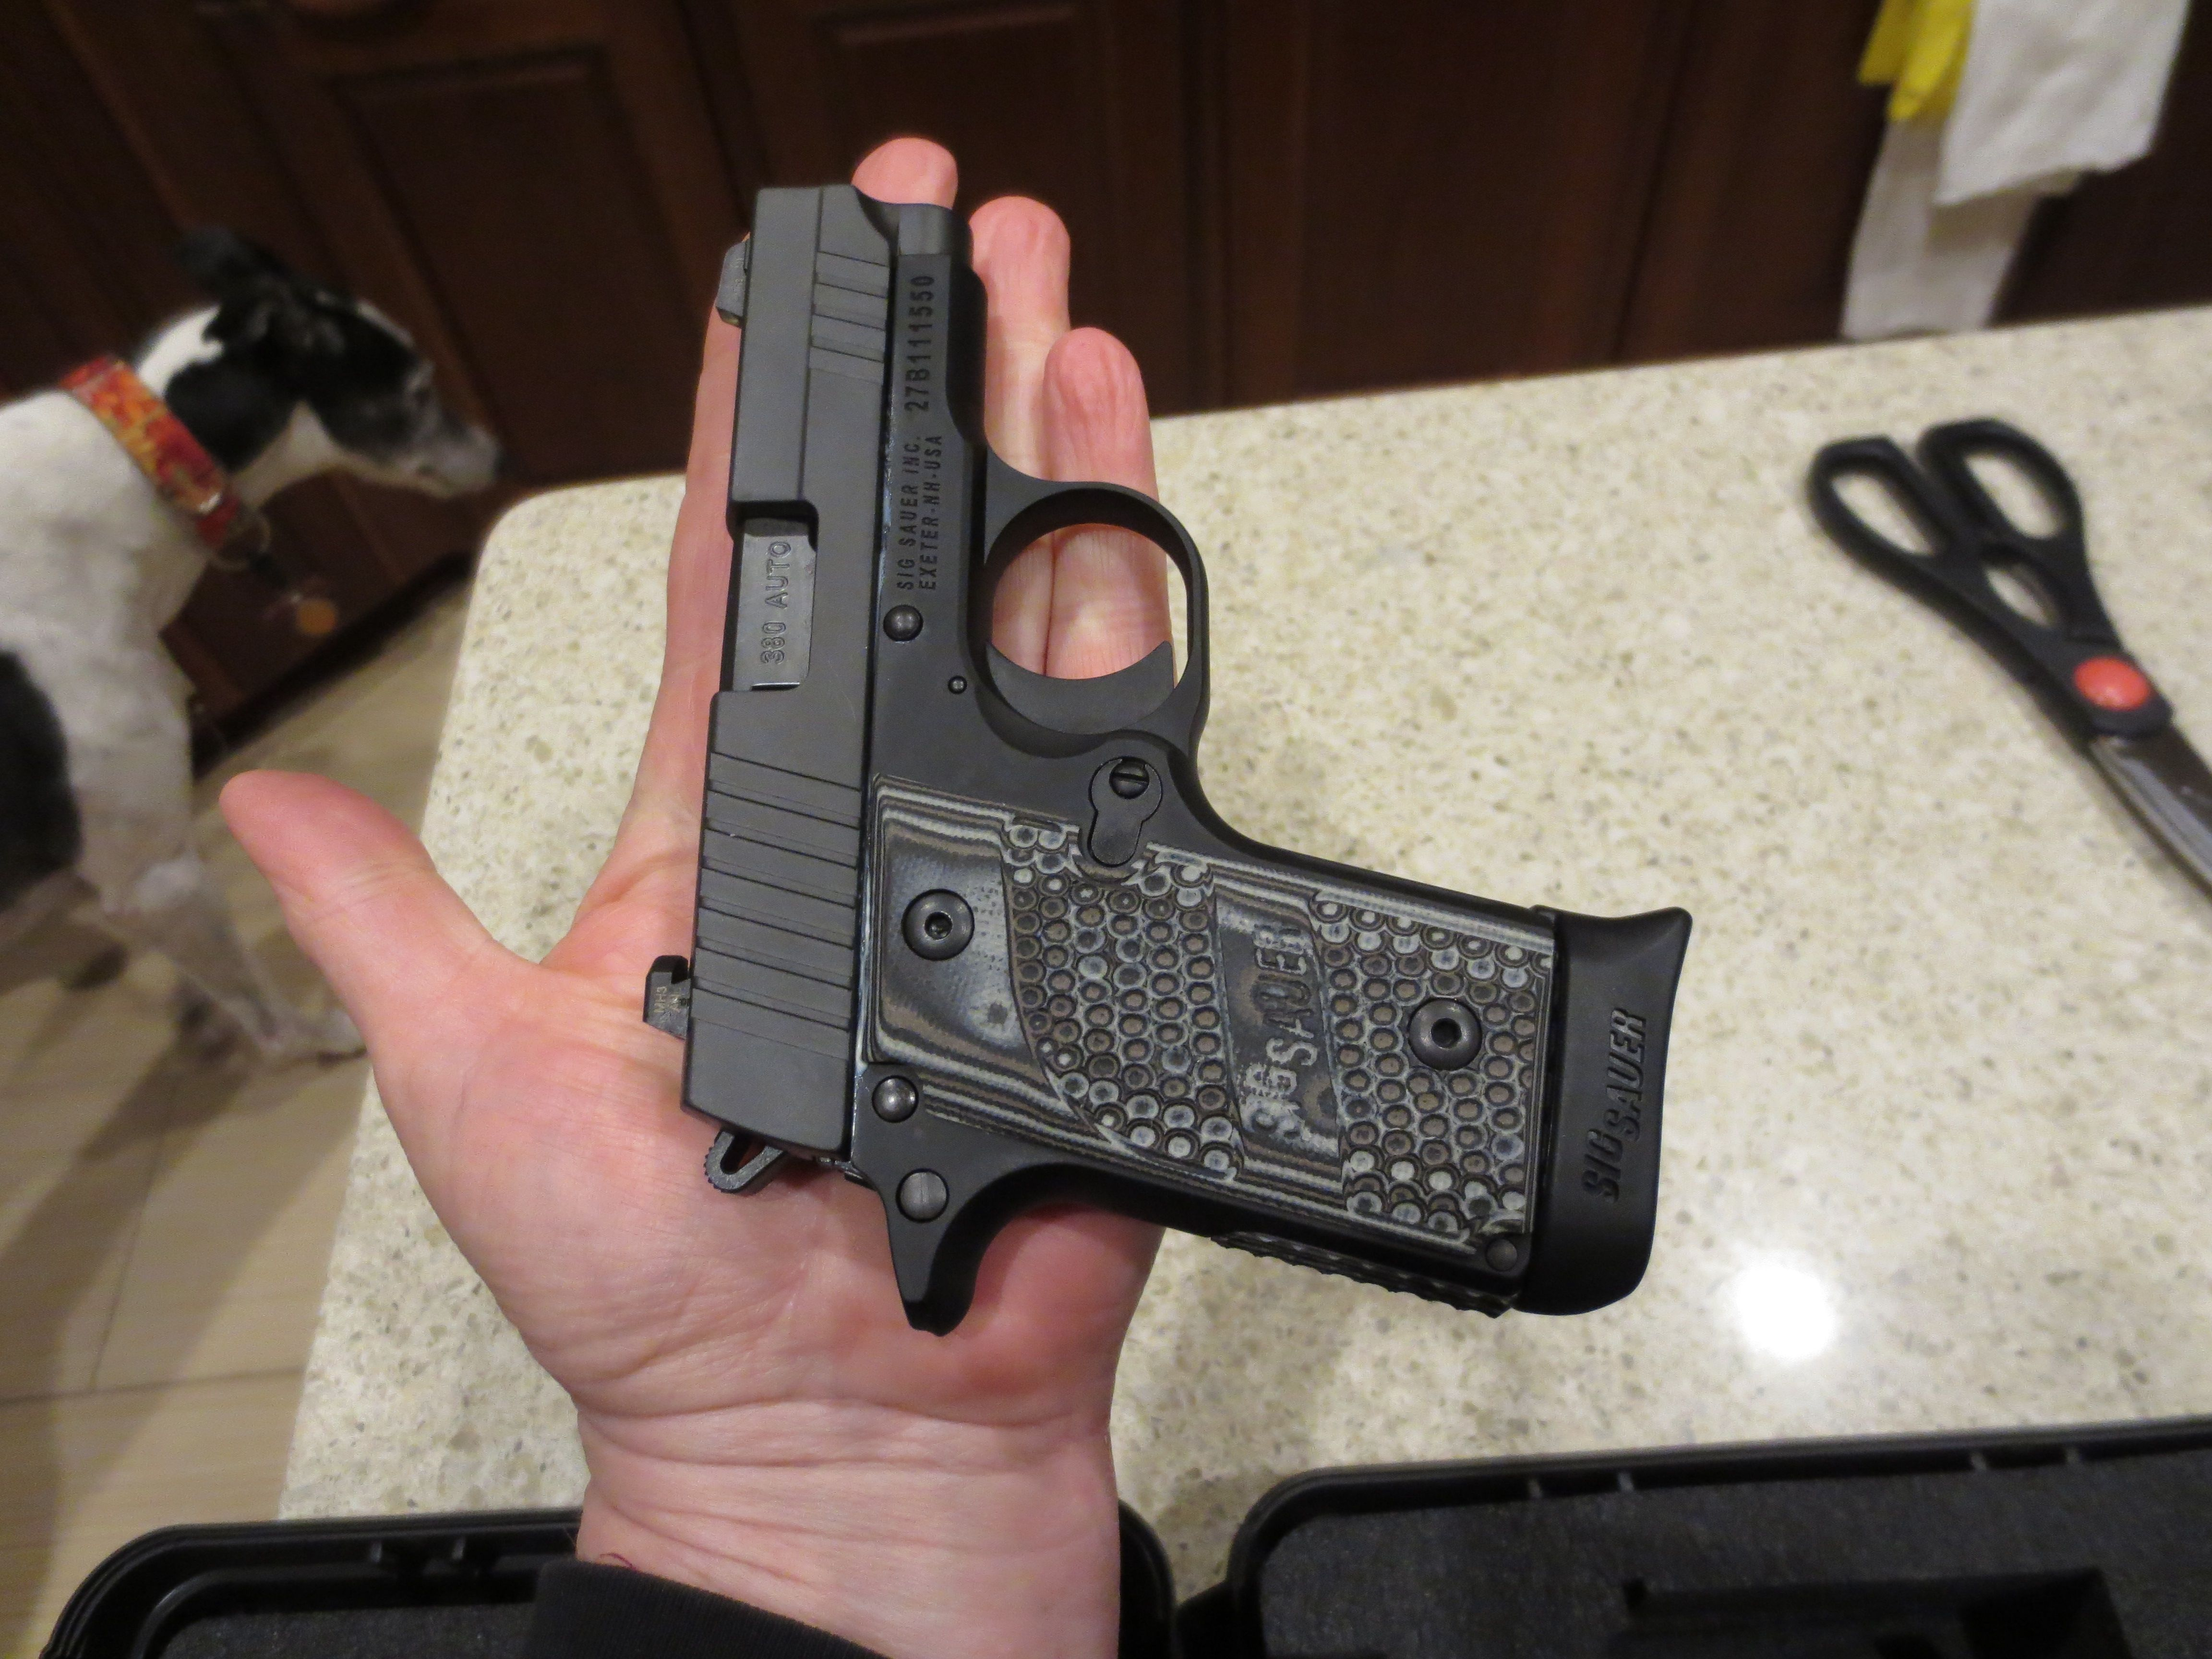 hight resolution of sig sauer p238 380 pistol with an extended magazine so tiny my hand almost hides it i love this little gun oh and those grips